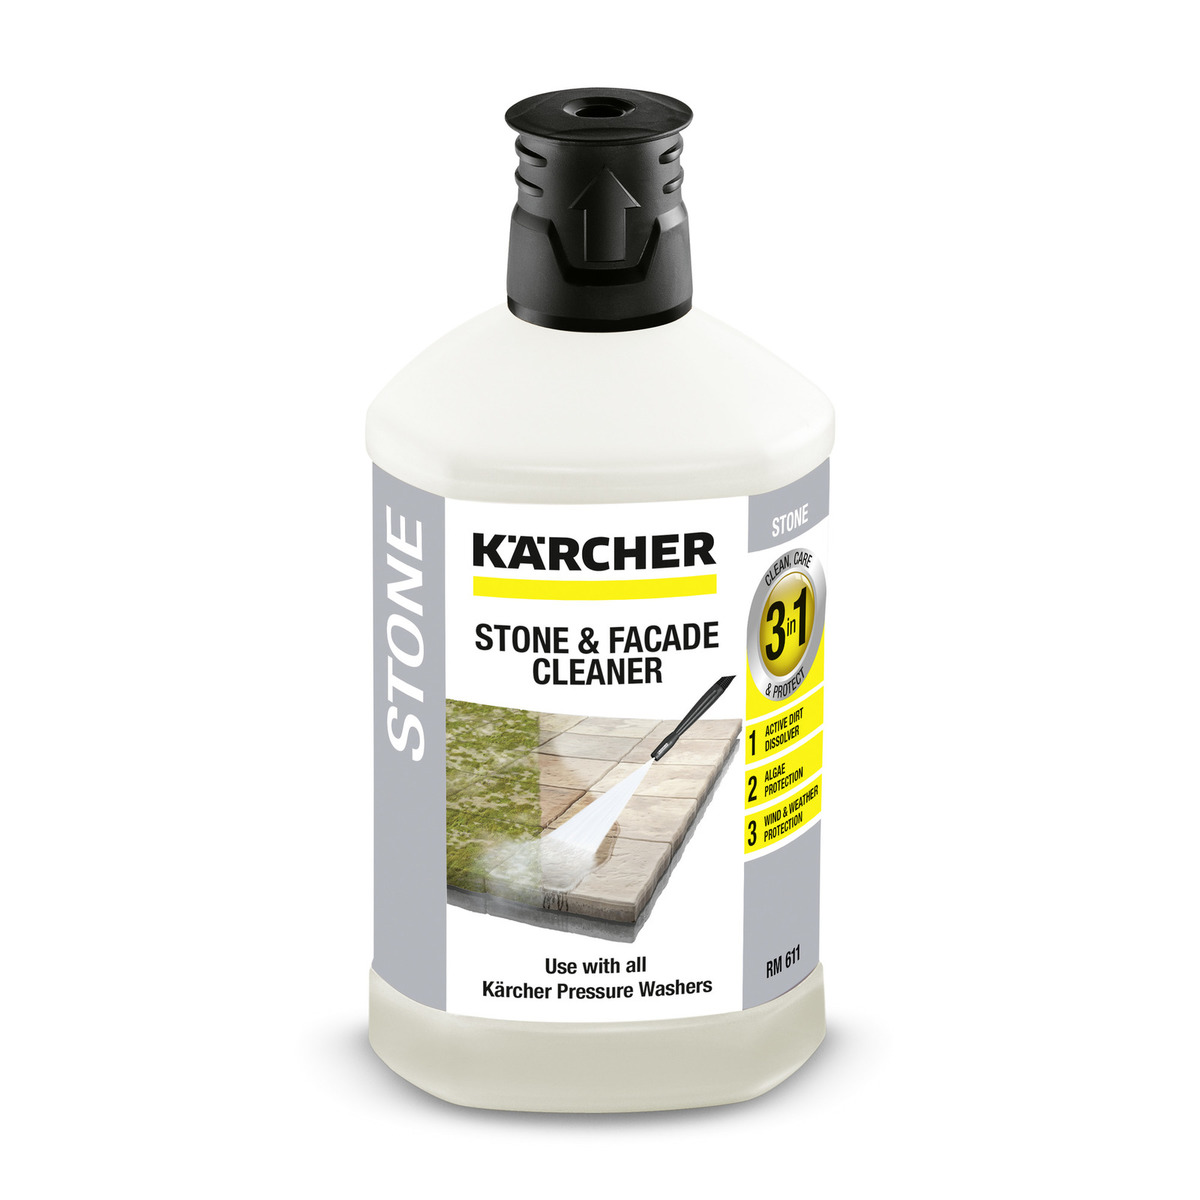 Karcher Stone cleaner